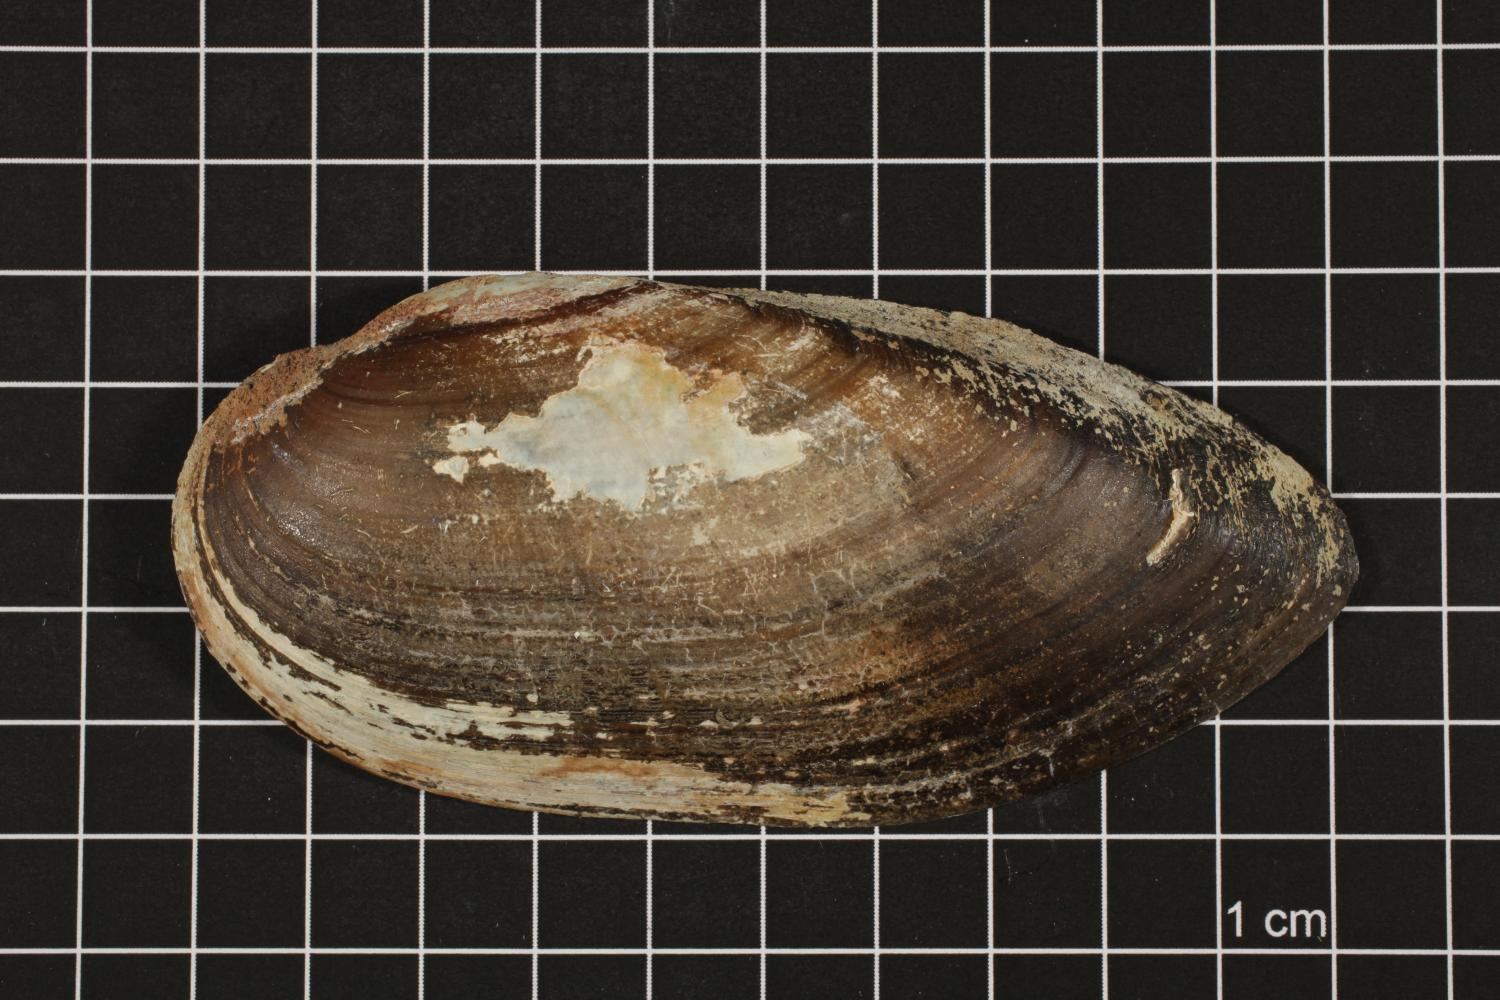 Lampsilis teres, Specimen #386                                                                                                      [Sequence #]: 1 of 6